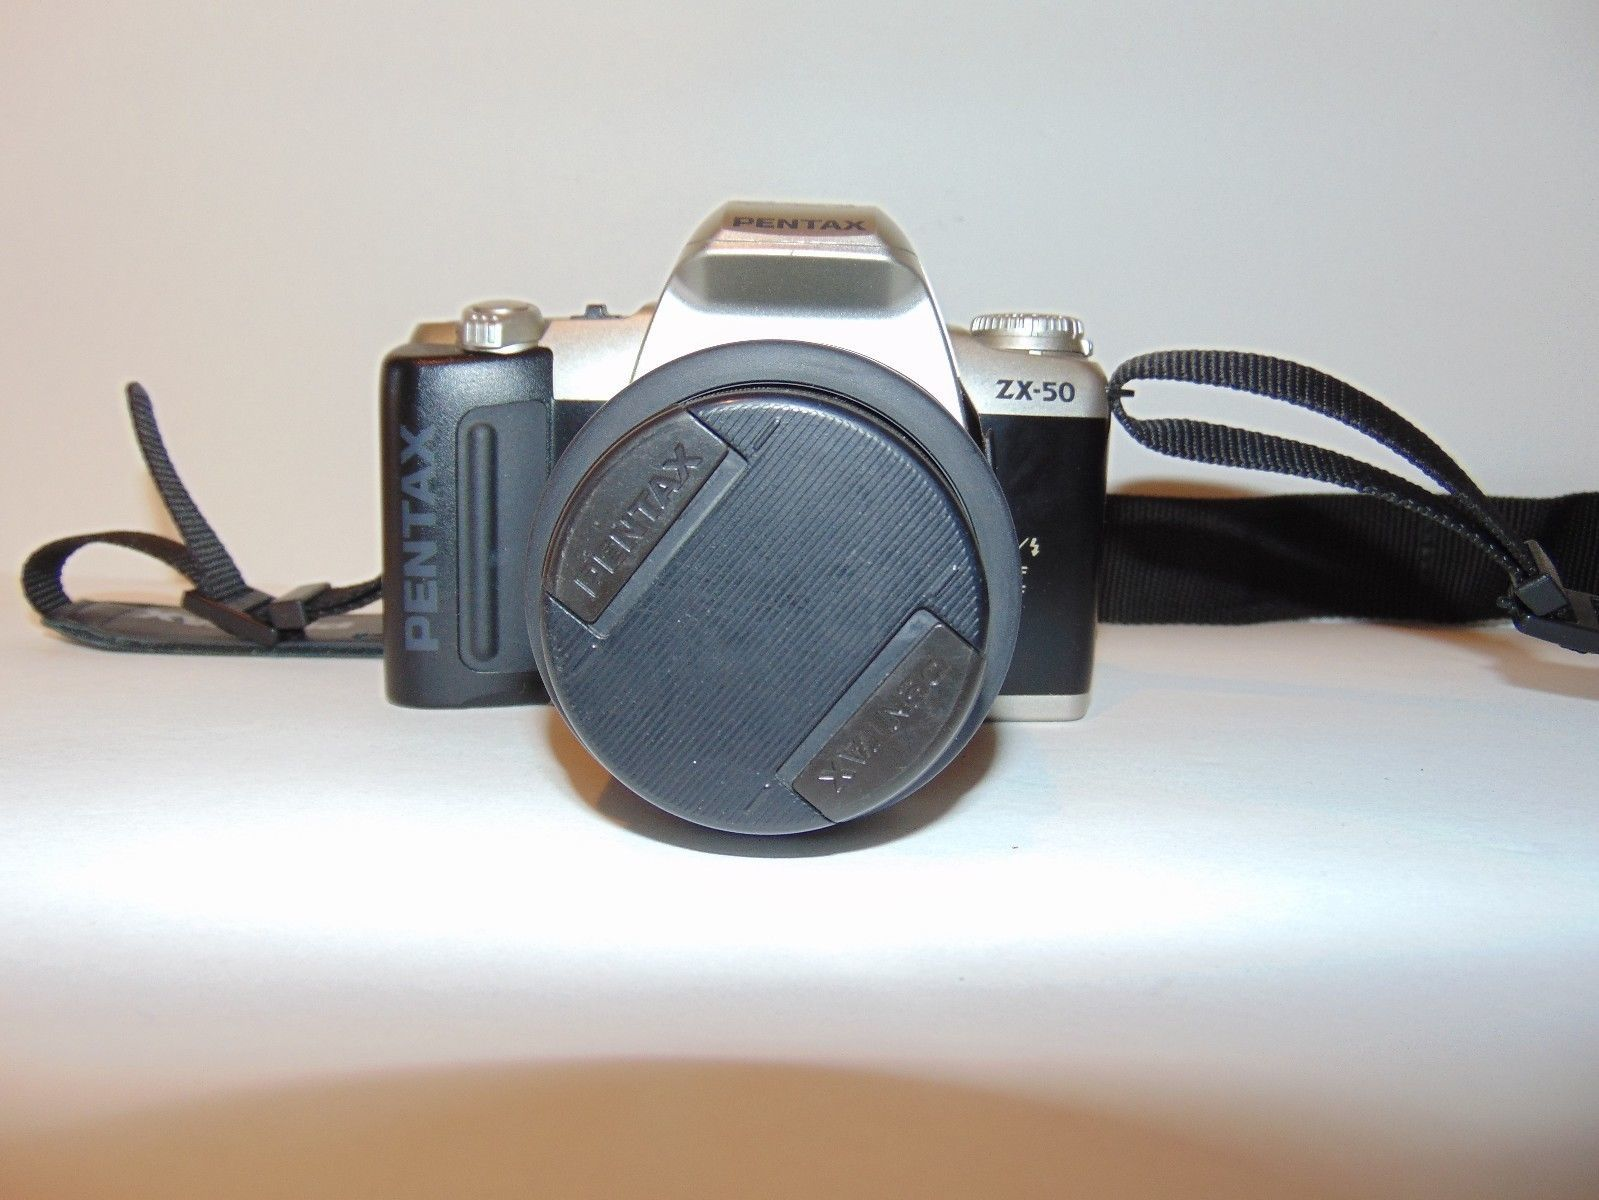 Pentax ZX-50 35mm SLR Film Camera with Pentax-F 35-80mm F4-5.6 Lens